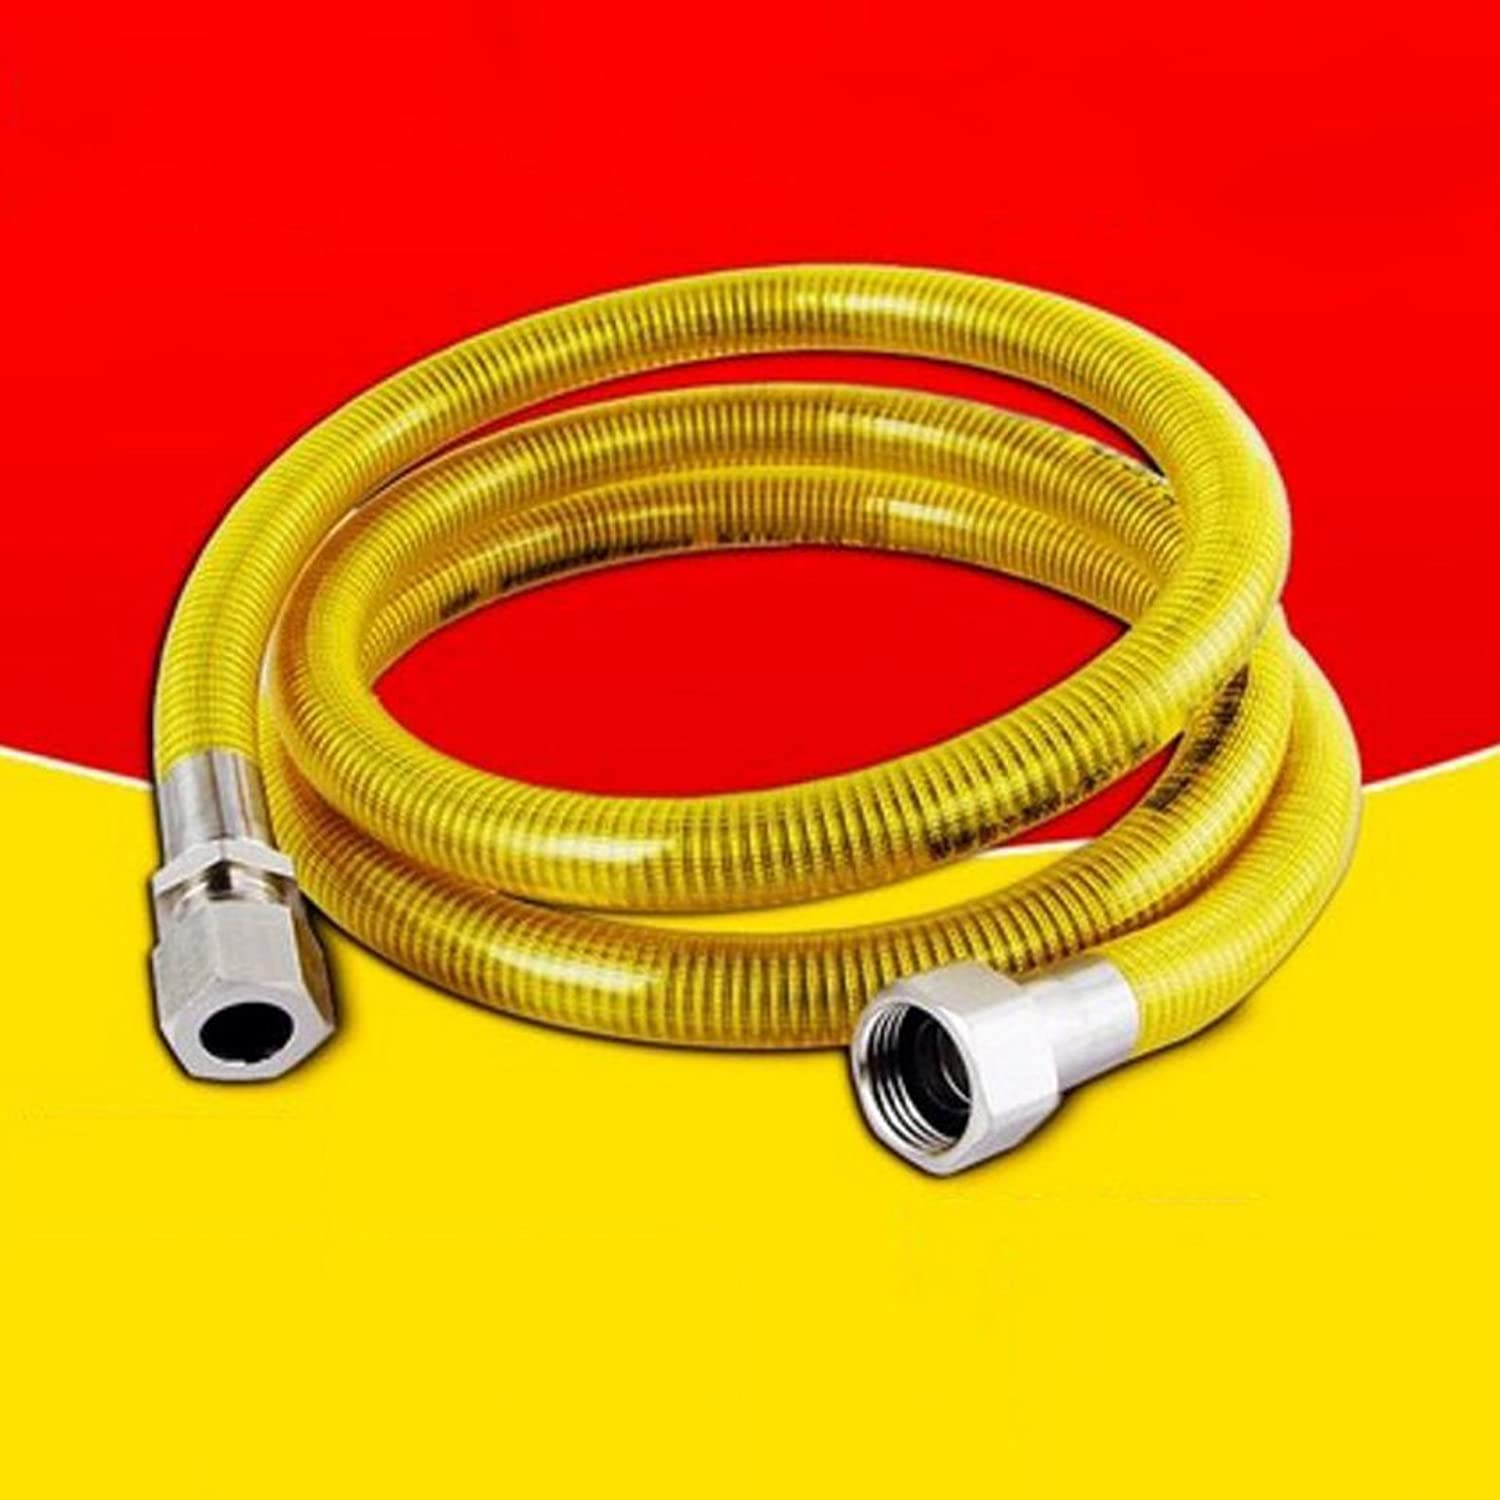 Hose Liuyu·home life 304 Stainless Steel Gas Pipe Natural Gas Pipe Gas Stove Water Heater Metal Corrugated 2.5m (color   Jack+jack)